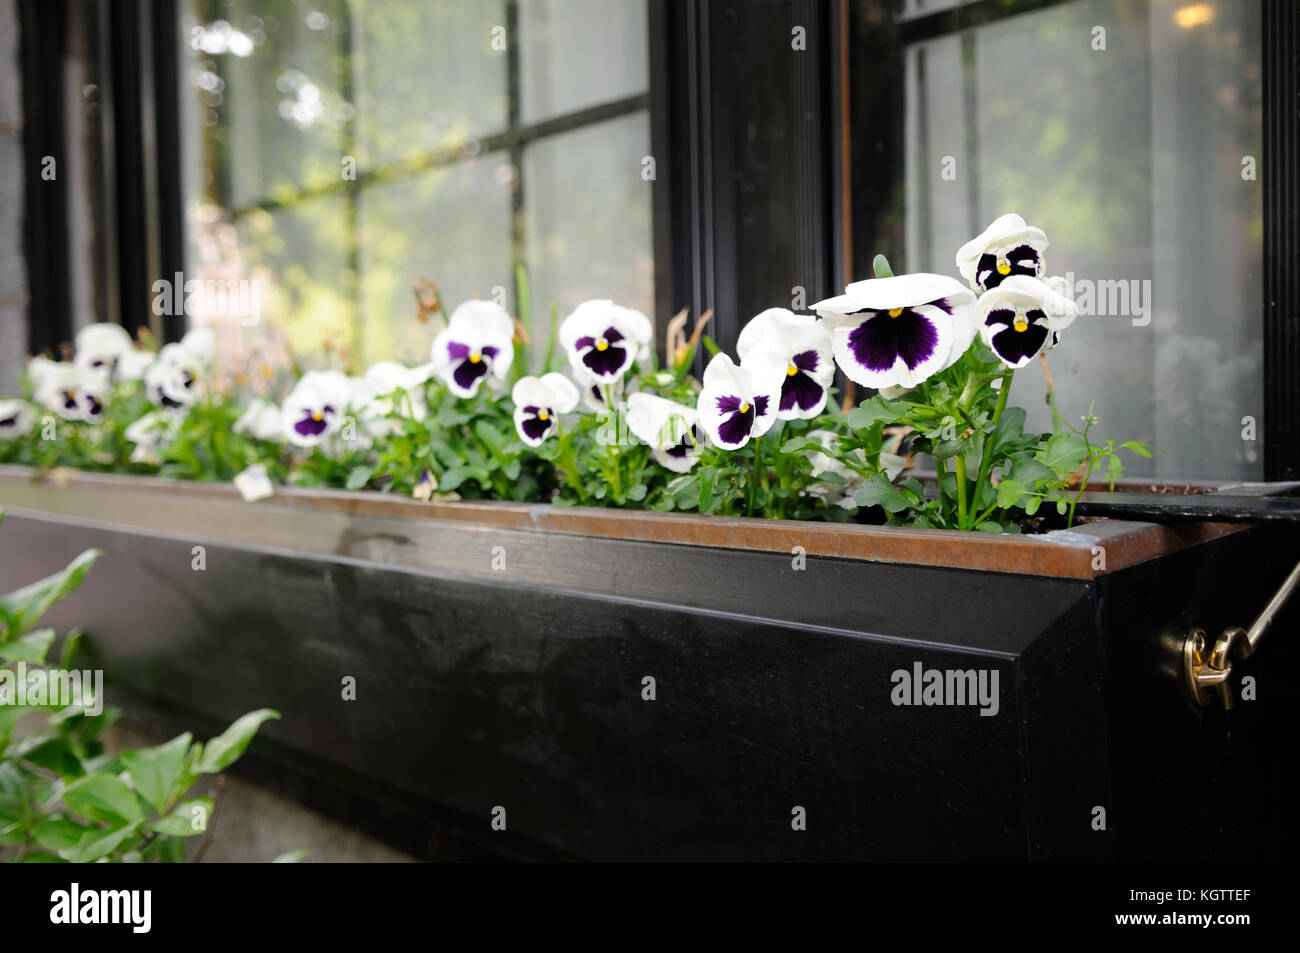 Elegant window box with pansies, very common in Beacon Hill, Boston - Stock Image